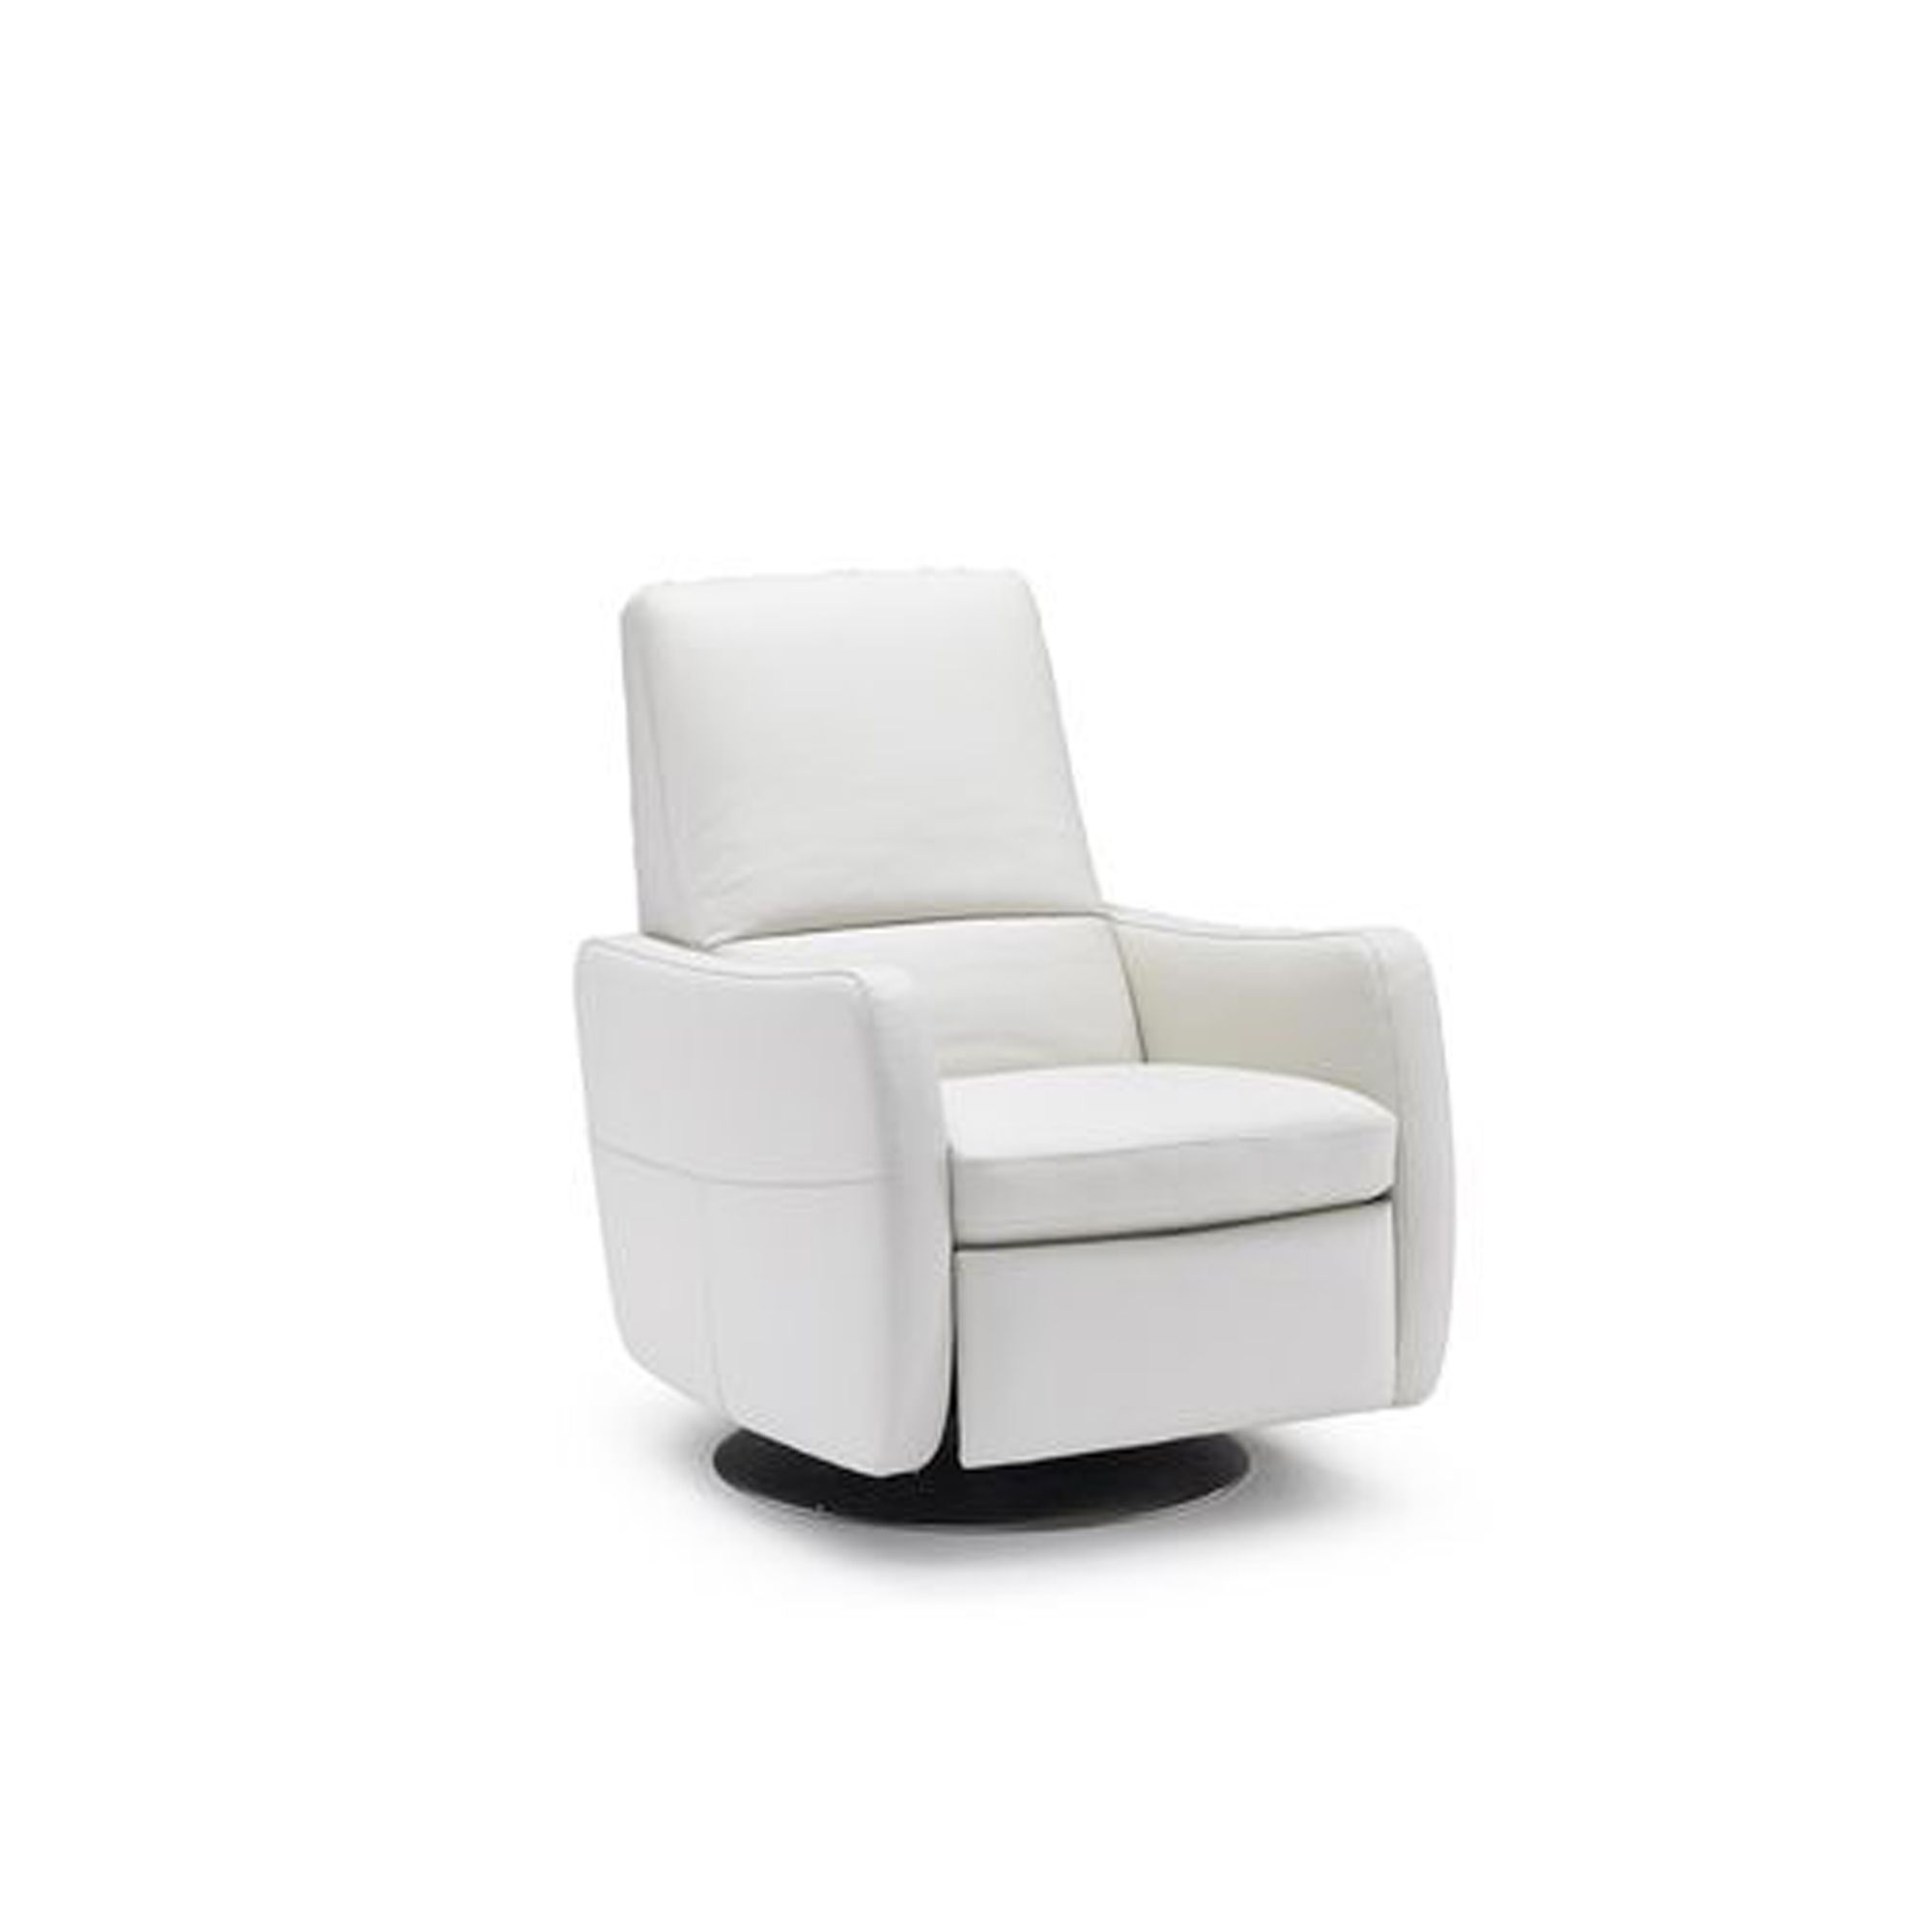 natuzzi electric recliner sofa cleaning fabric with vinegar find every shop in the world selling editions